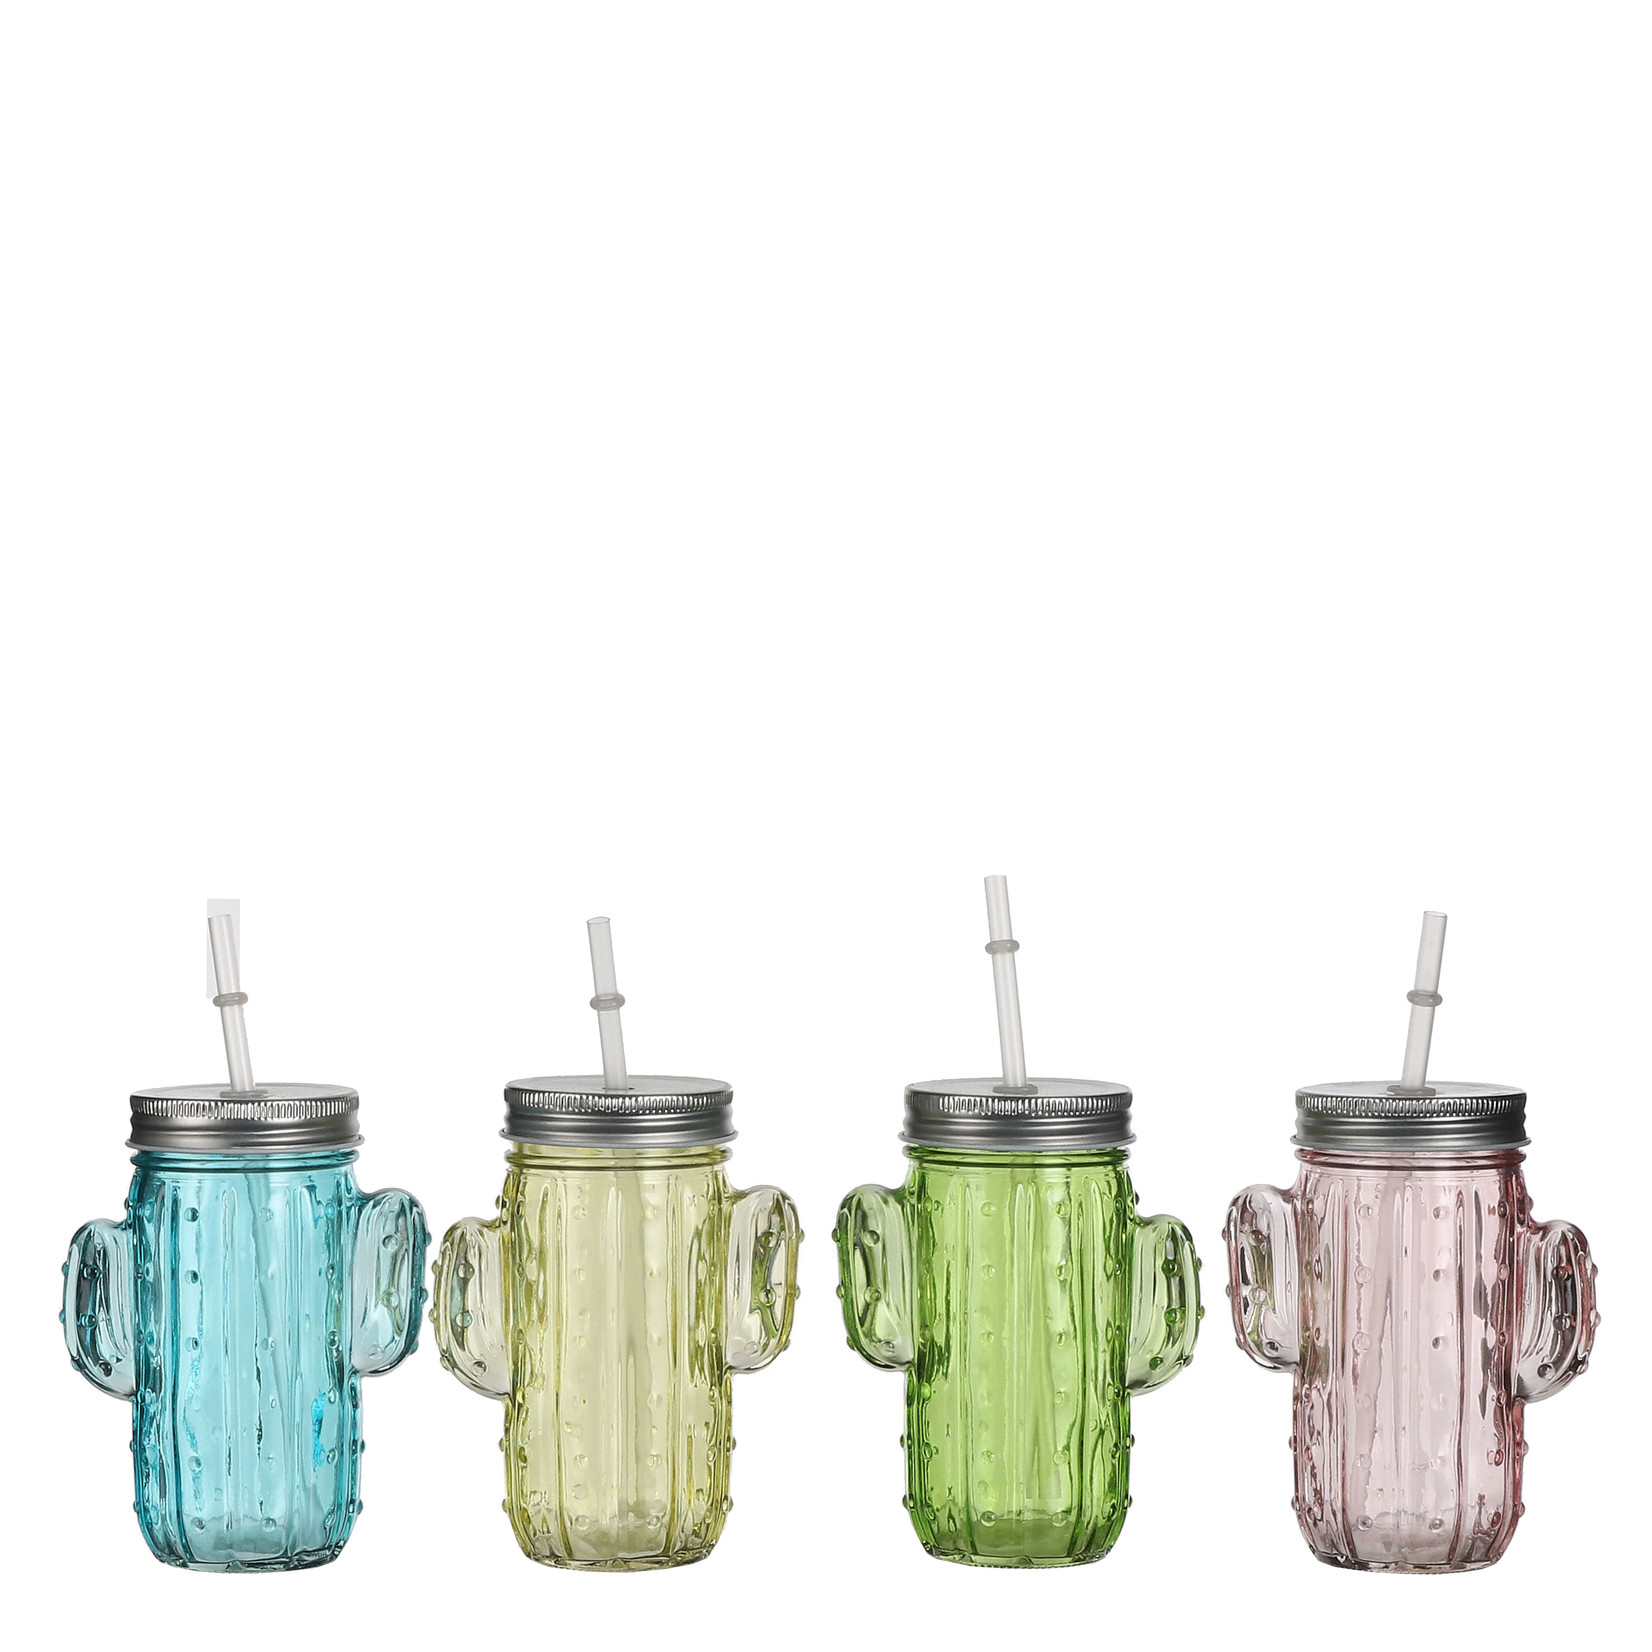 MiCa 1053806 Jug pink blue yellow green 4 assorted